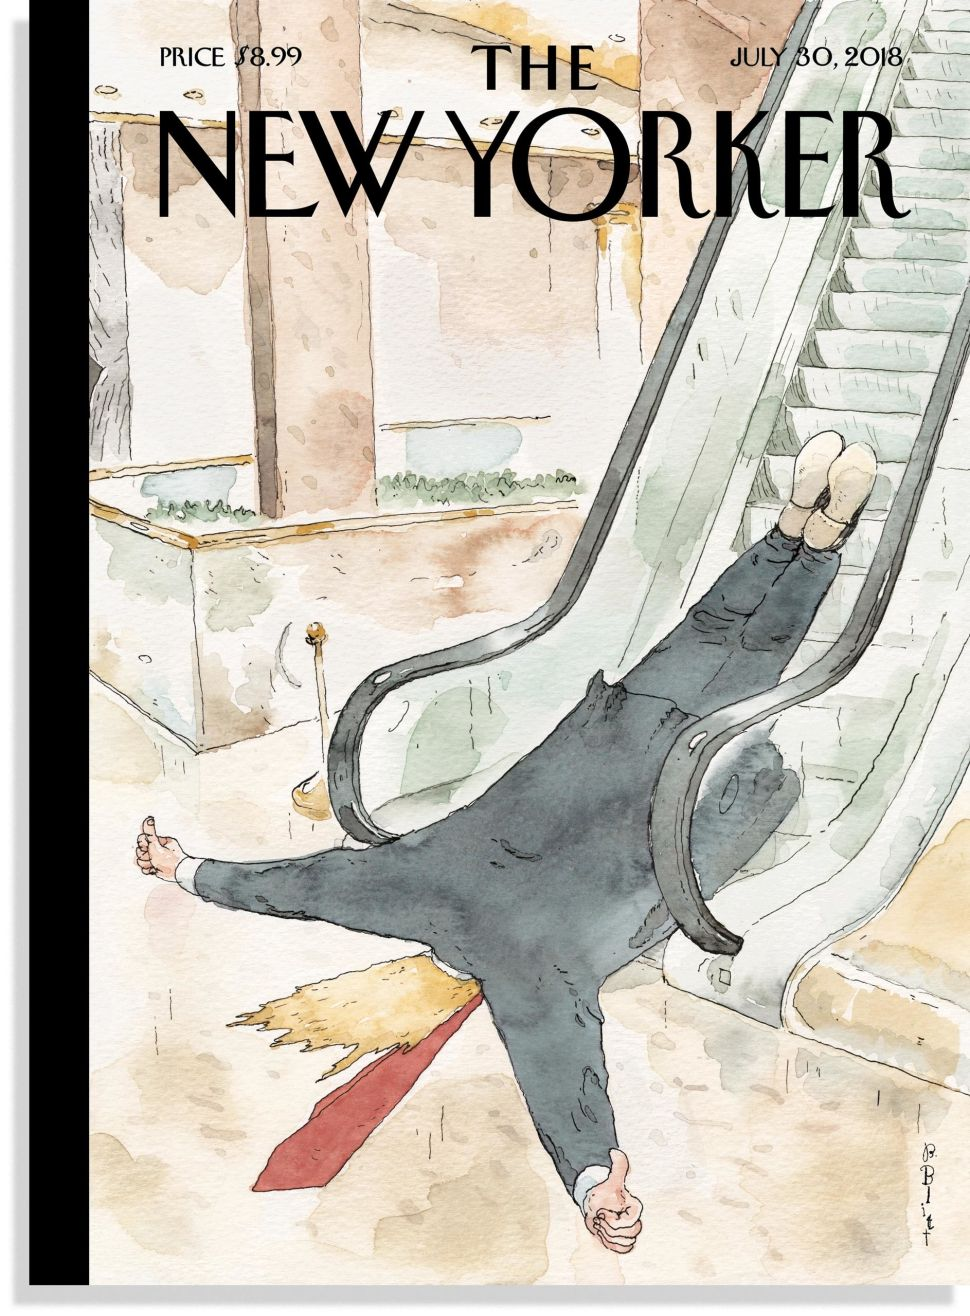 Despite Drudge Drama, The New Yorker Doesn't Want Trump Dead